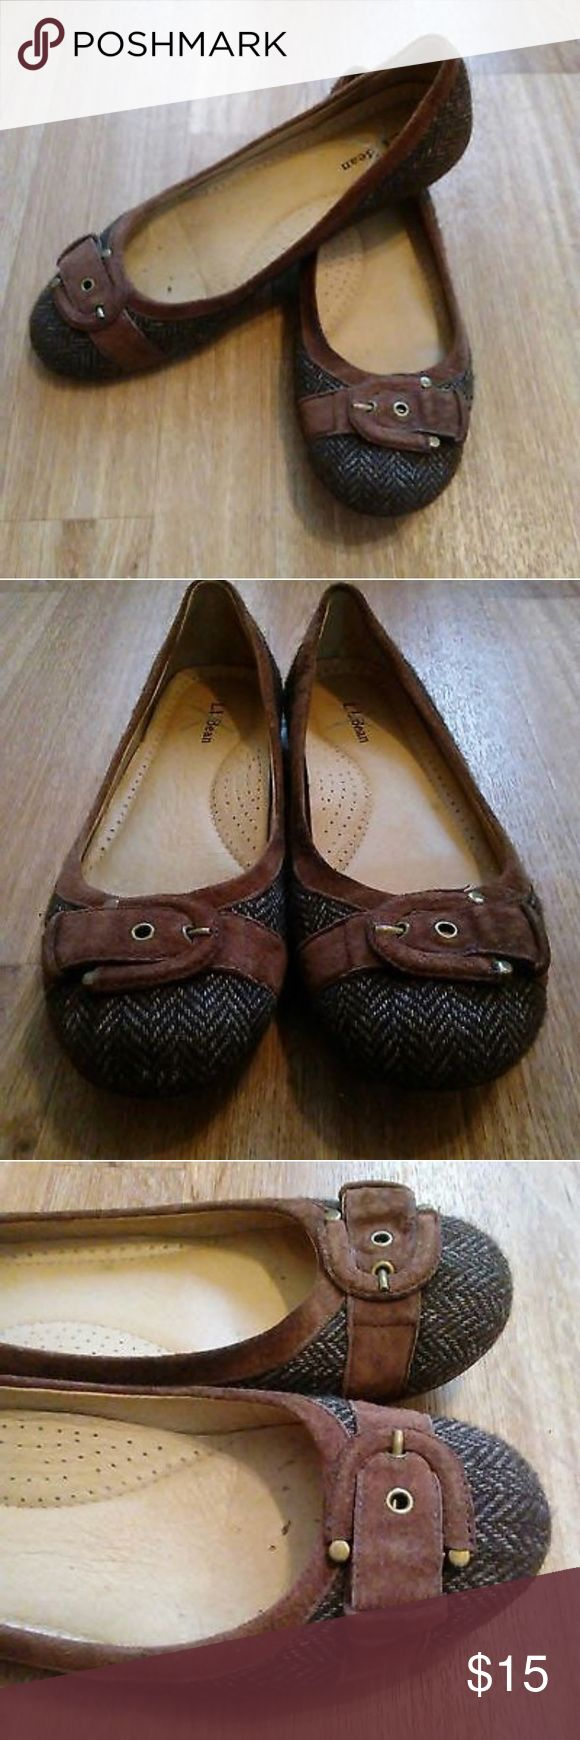 Women's LL Bean Brown Herringbone Flats Women's LL Bean Brown Herringbone Flats with buckle. The shoes are in good condition with some slight wear to the soles. These shoes are Size 9 and good quality. These shoes have a life time warranty through LL Bean if anything goes wrong in the future and LL Bean will replace no questions asked. These have good support and tread. The outside is wool and suede and inside of shoe is leather. LL Bean Shoes Flats & Loafers